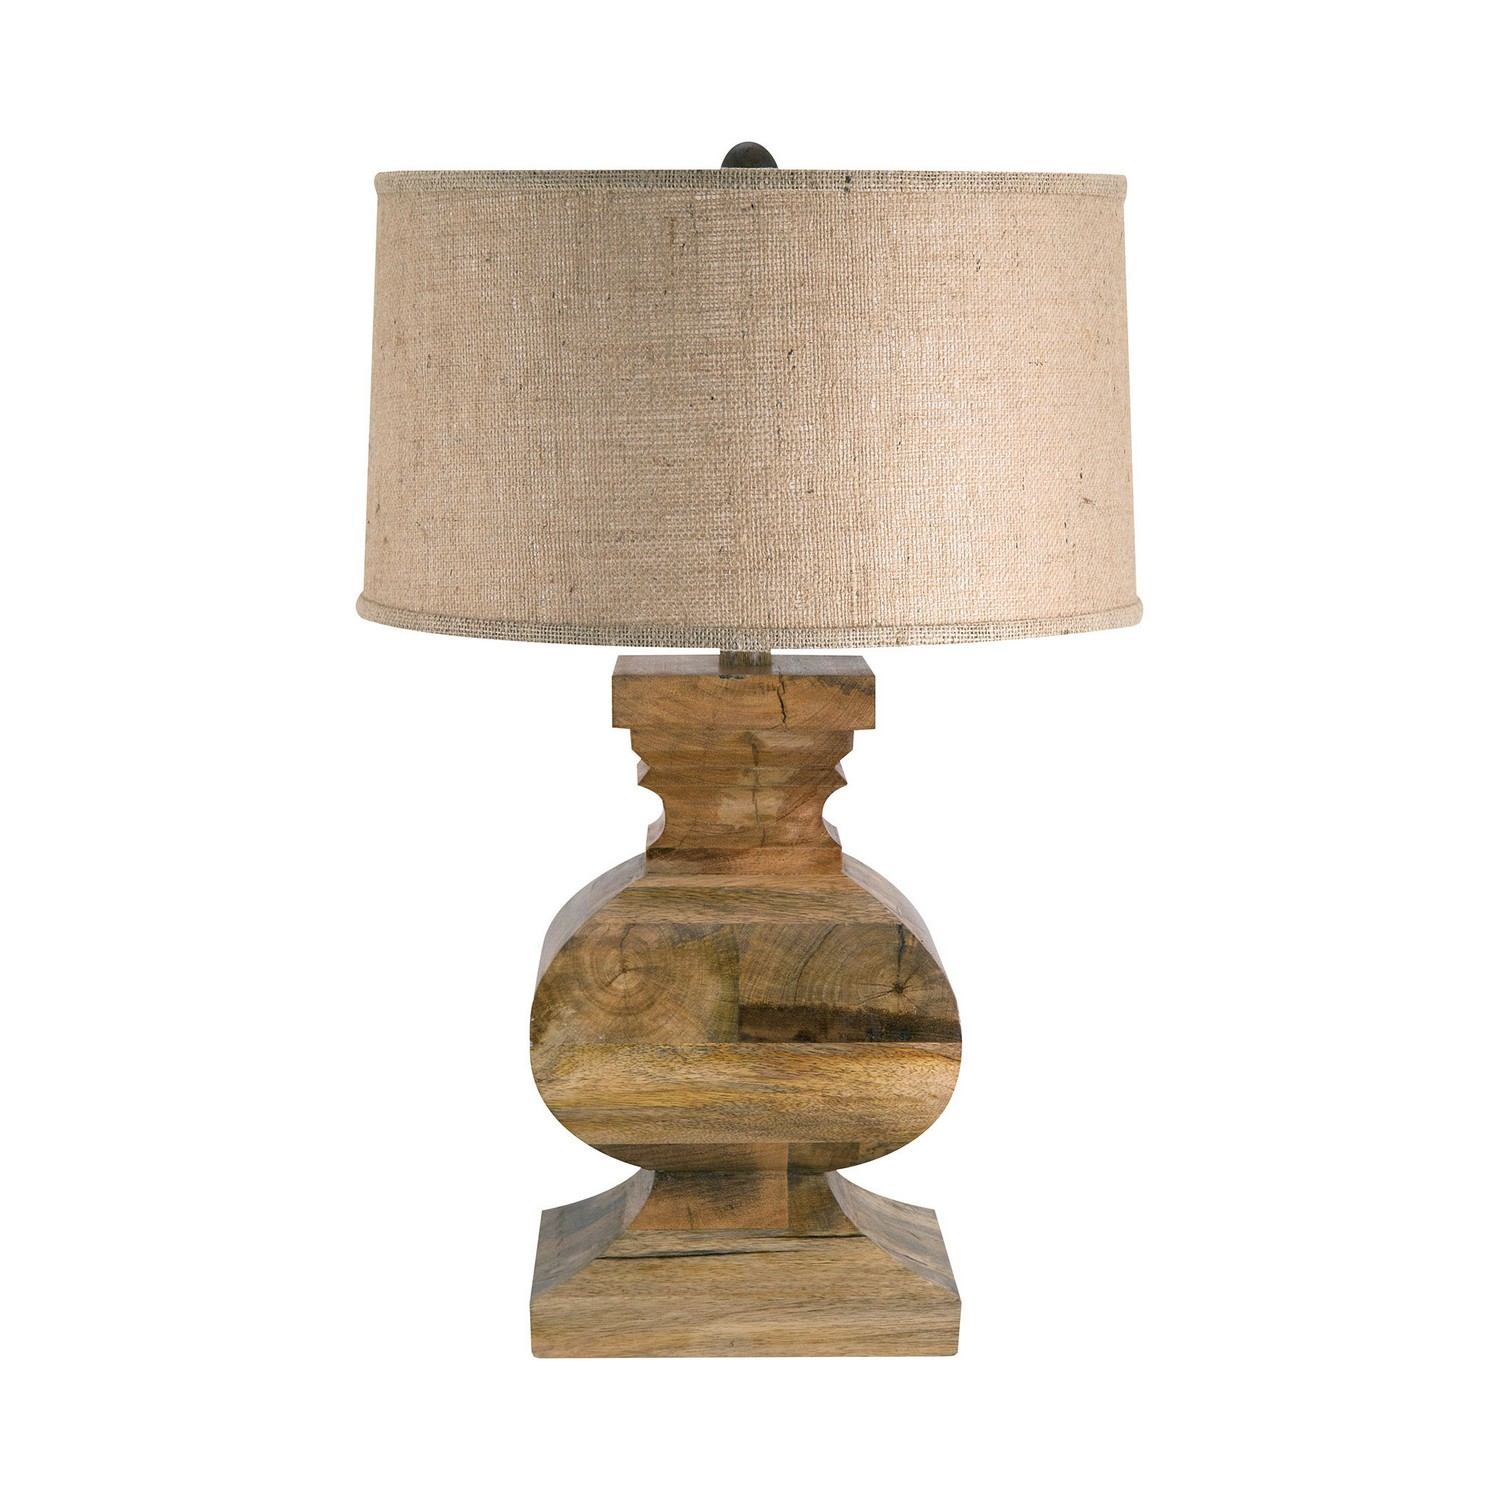 solid wood curved block table lamp interiordecorating. Black Bedroom Furniture Sets. Home Design Ideas